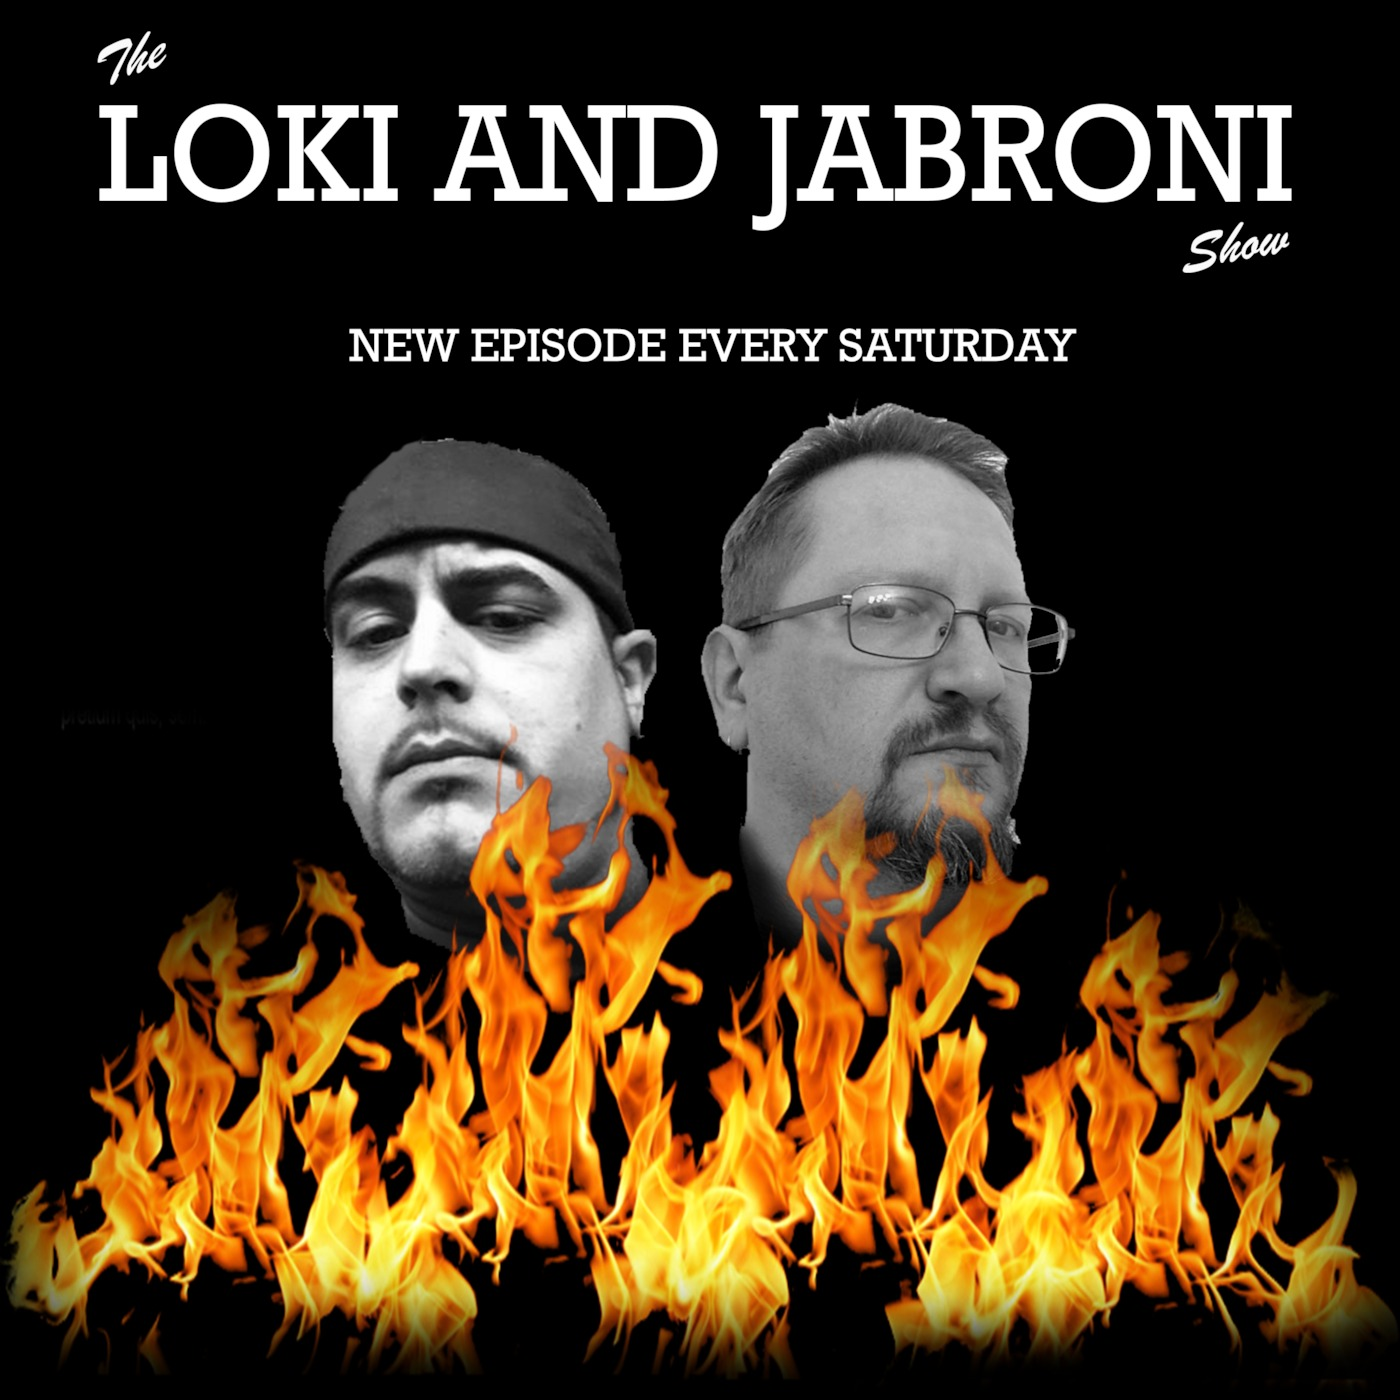 Loki and Jabroni Show